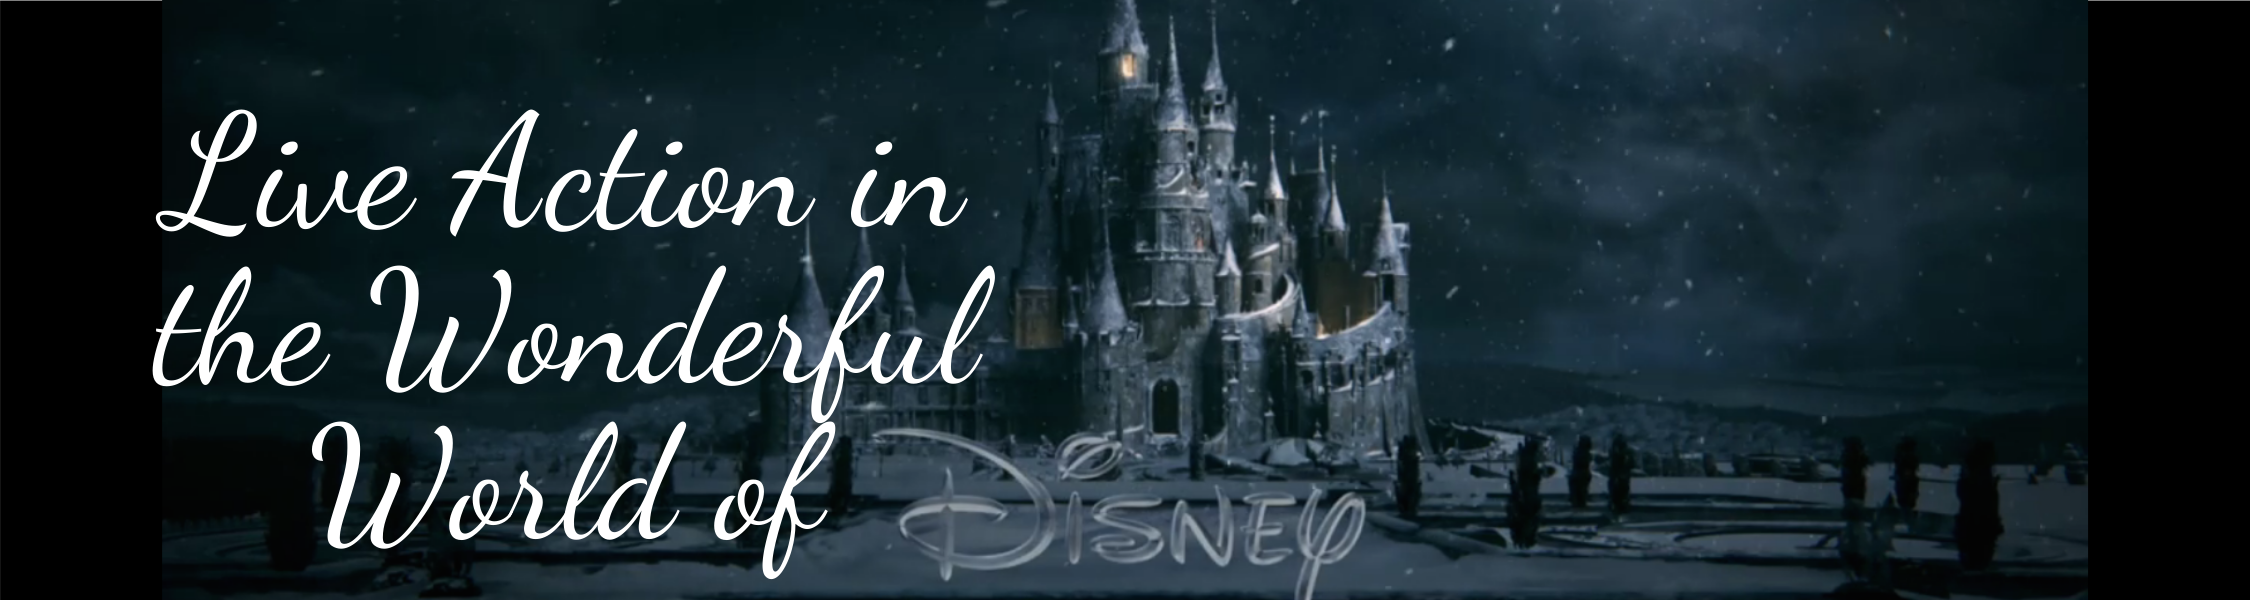 Live Action in the Wonderful World of Disney